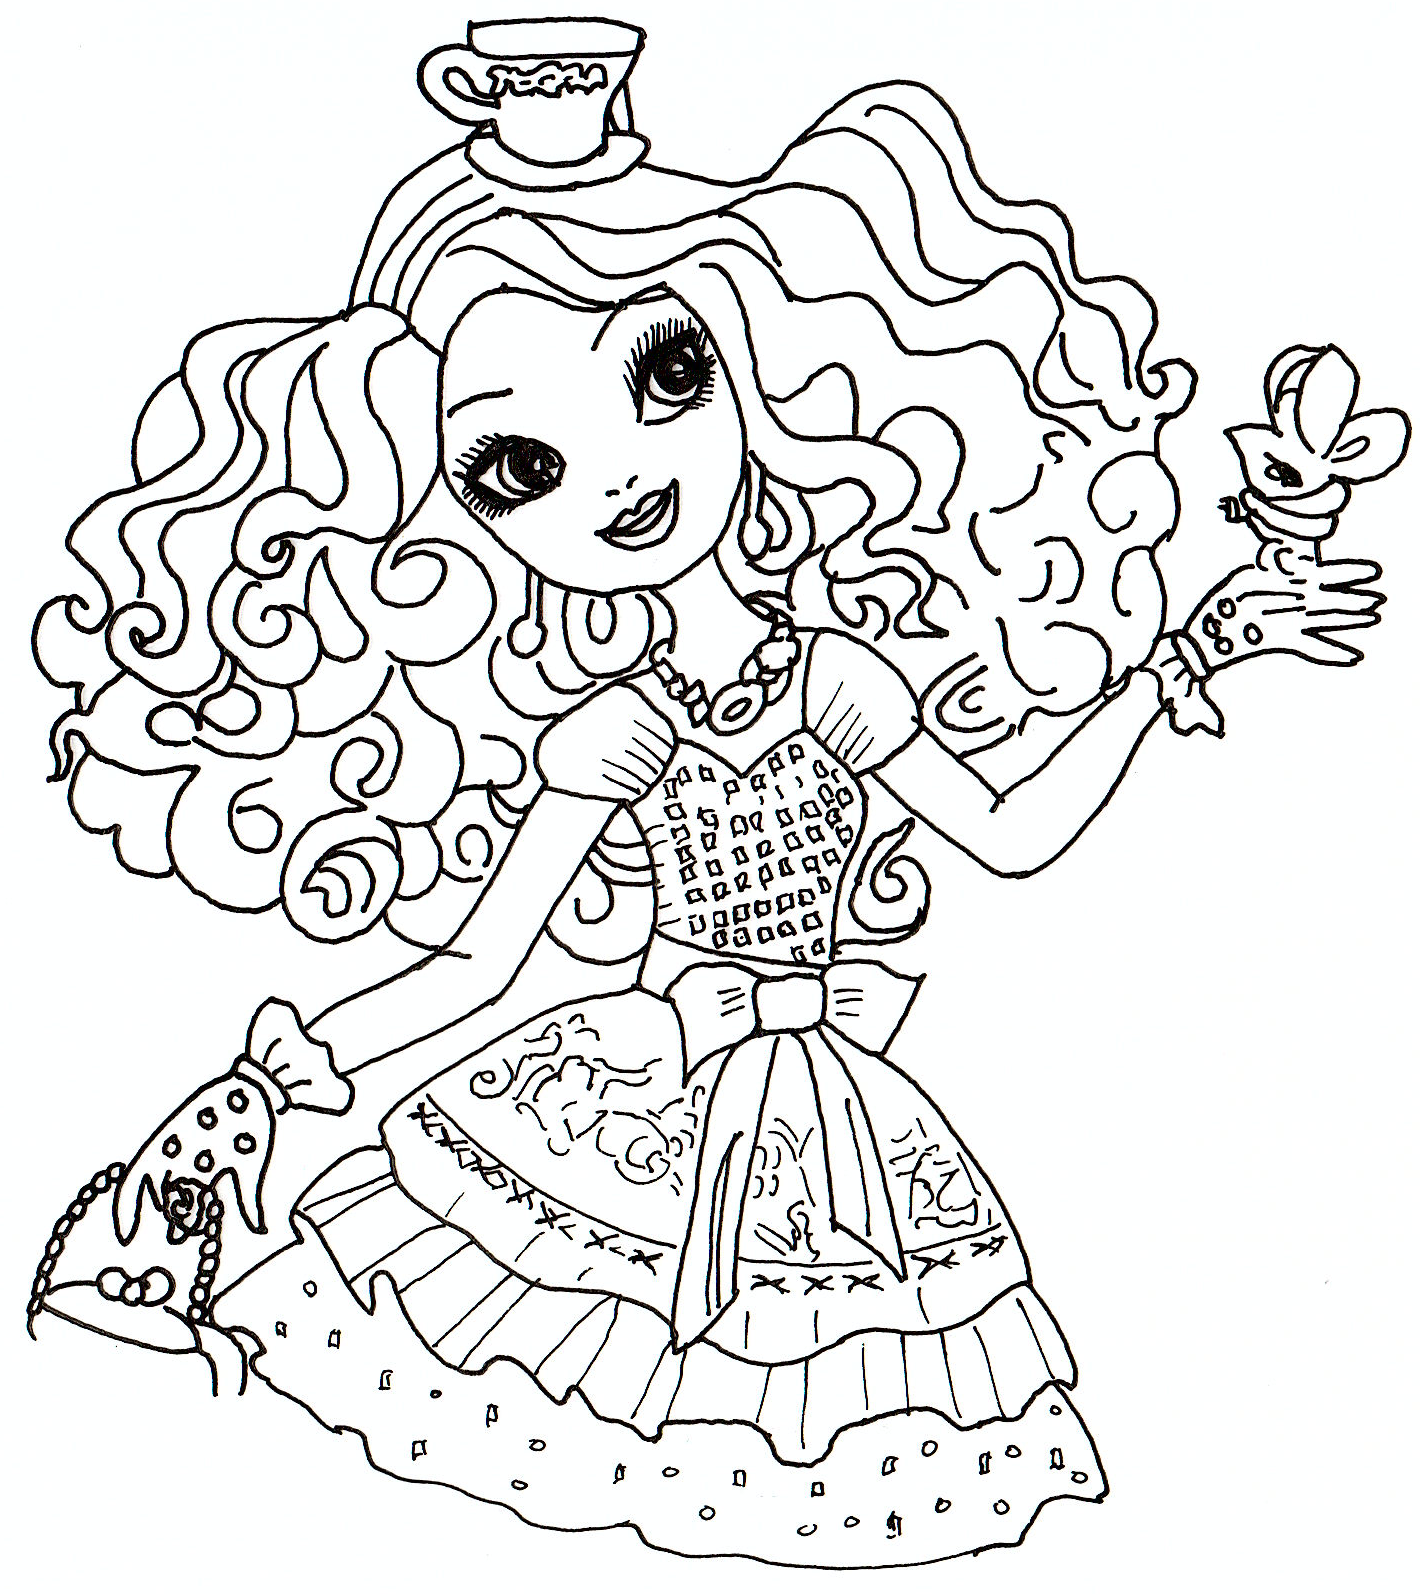 Luxe Dessin A Imprimer Monster High Clawdeen